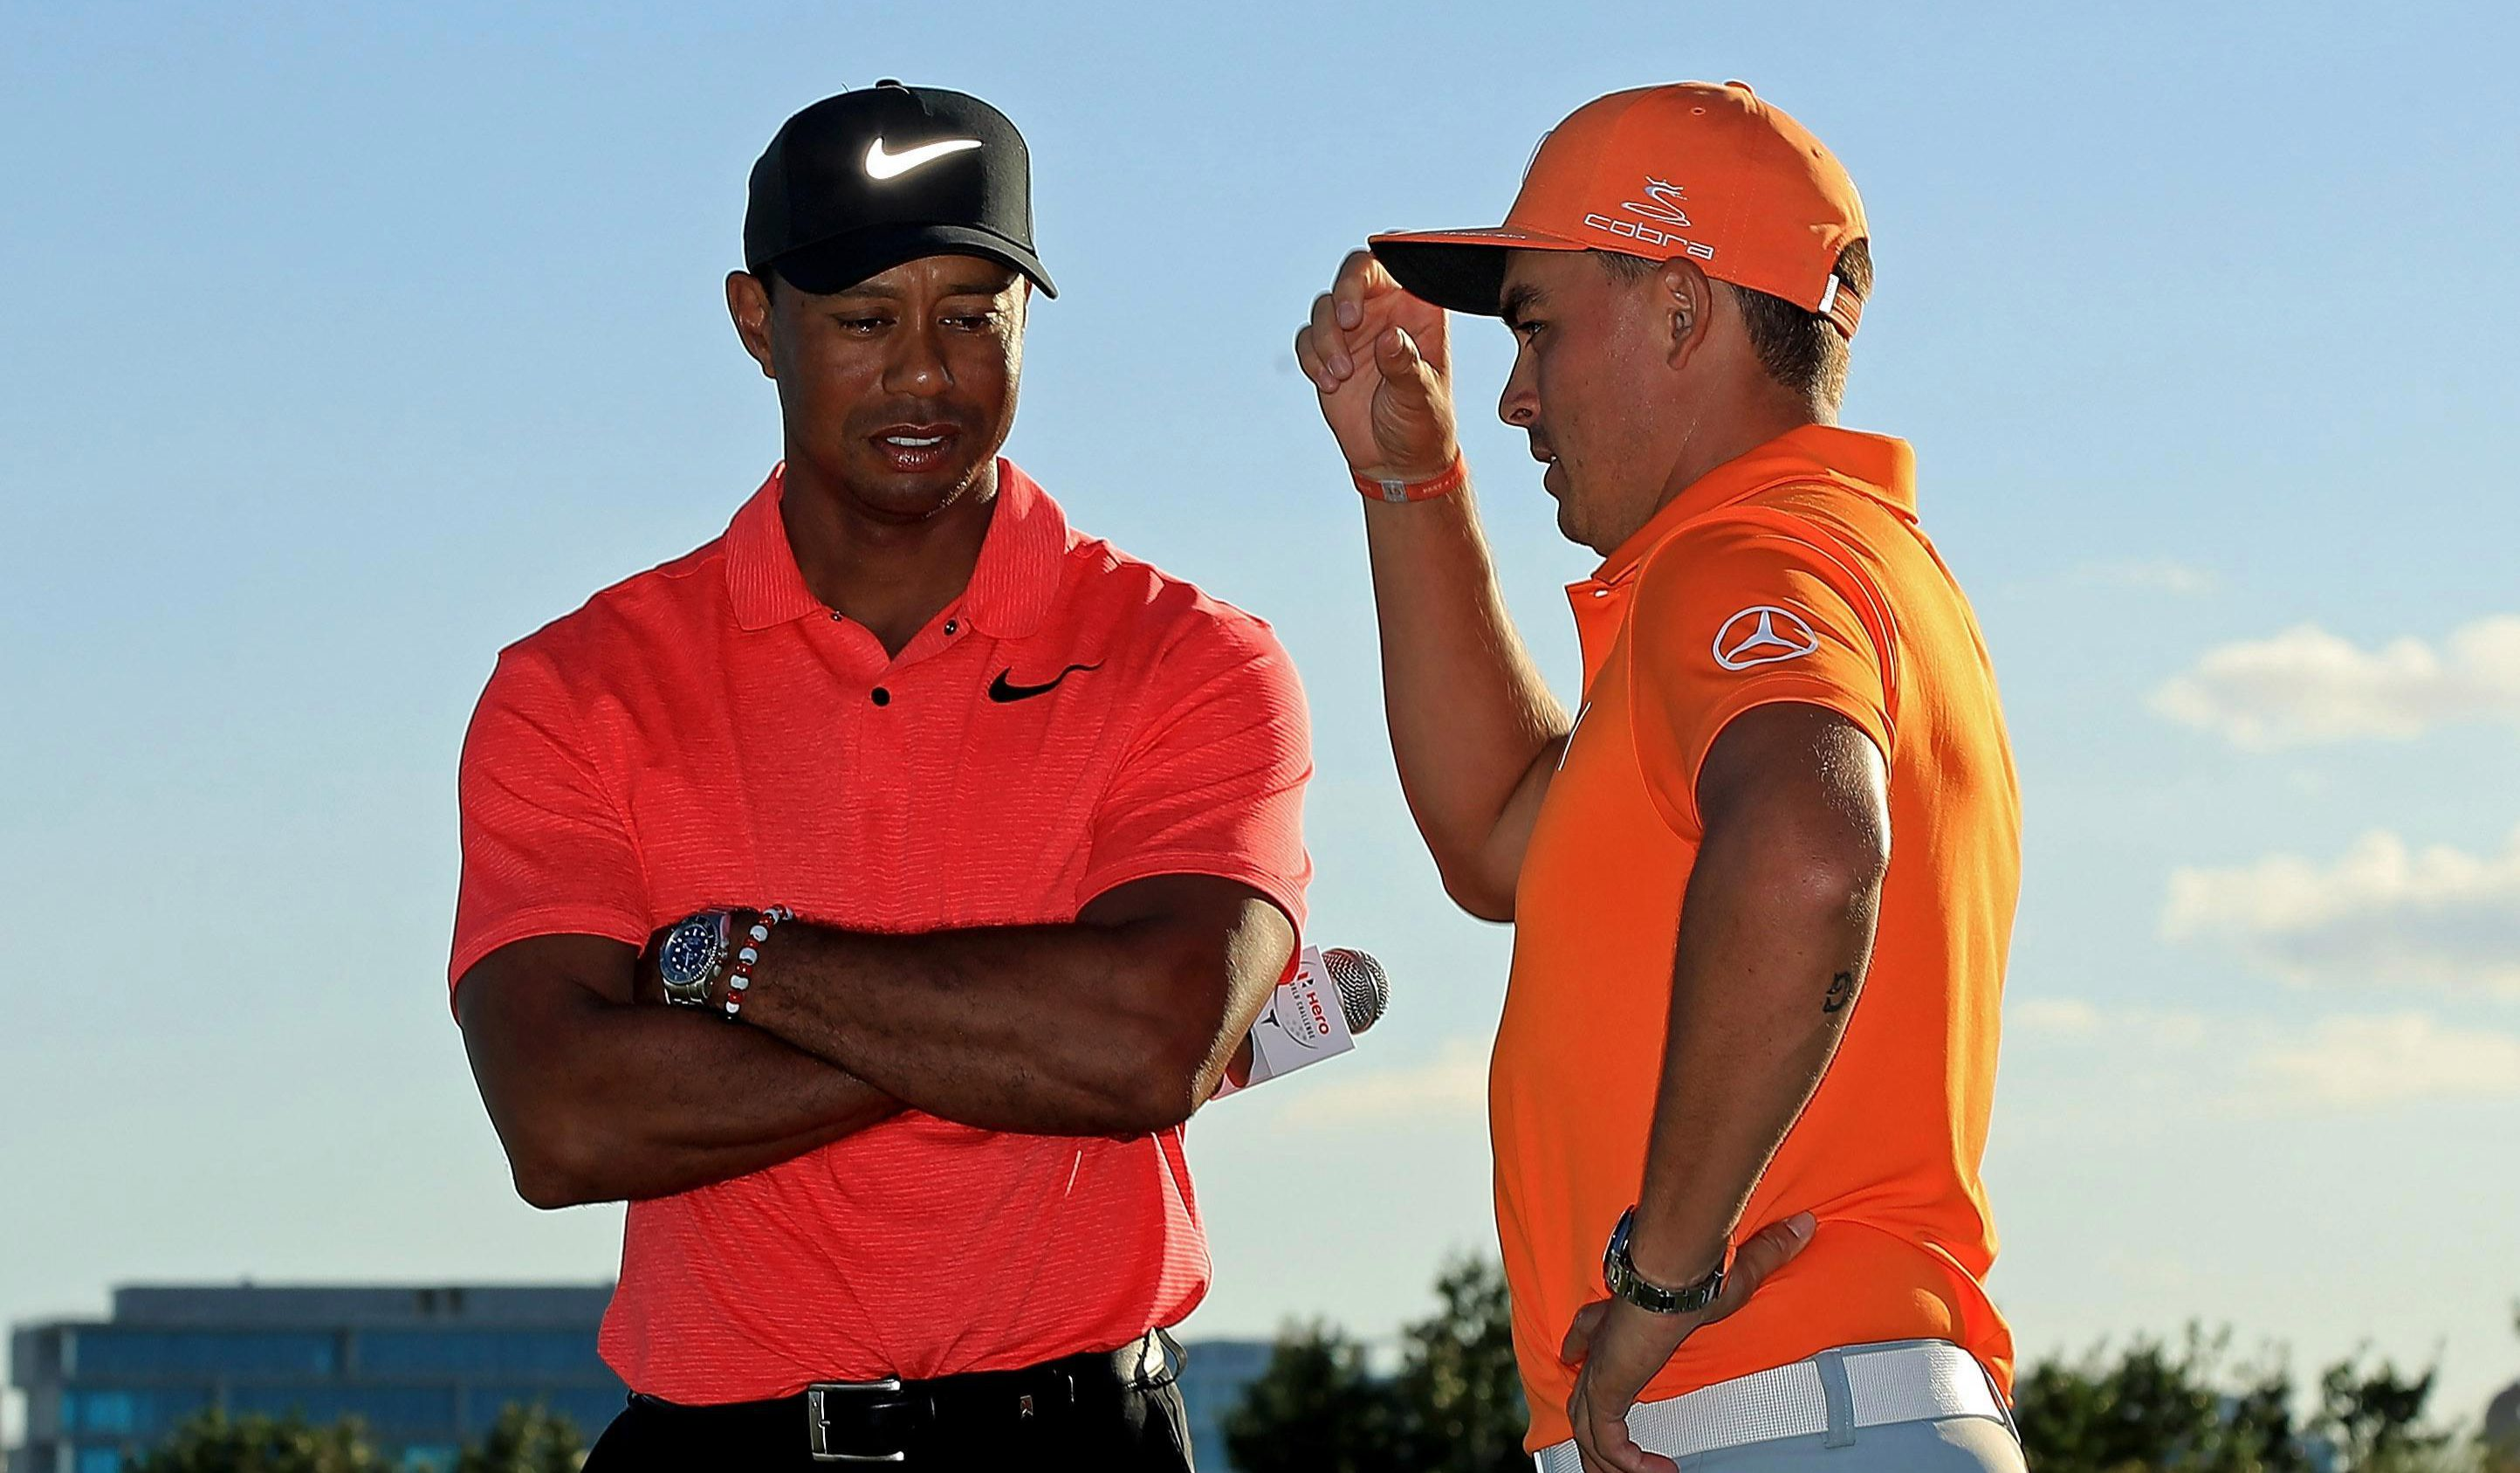 Rickie Fowler is looking forward to taking on Tiger Woods again